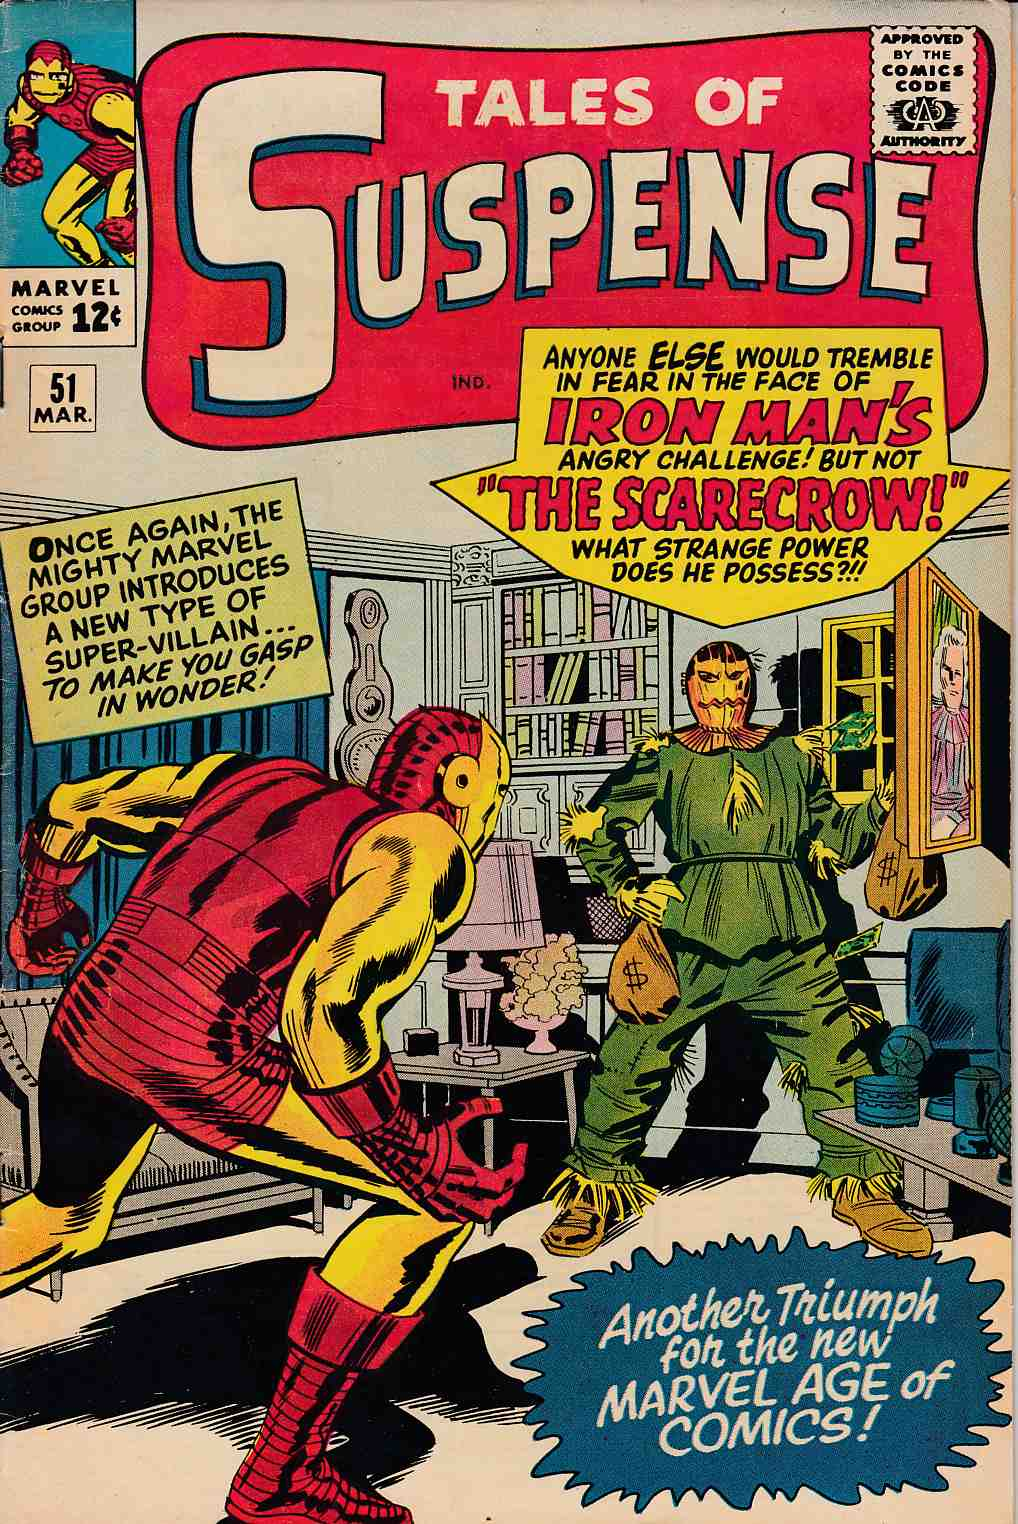 Tales of Suspense #51 Fine Plus (6.5) [Marvel Comic] THUMBNAIL